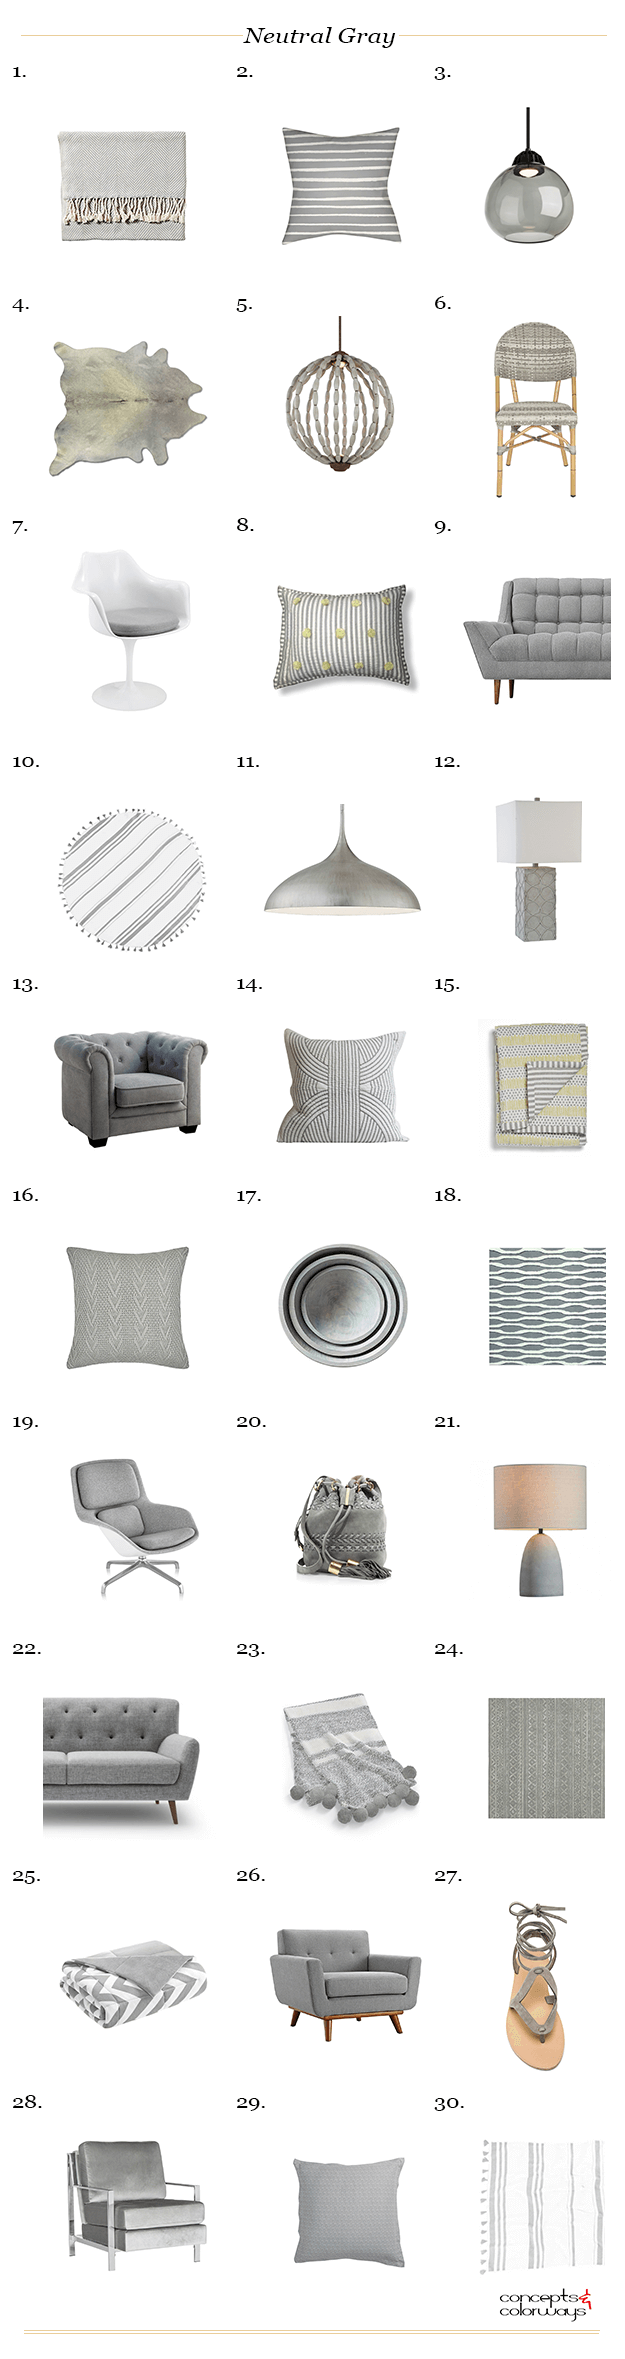 Pantone Neutral Gray interior design product roundup